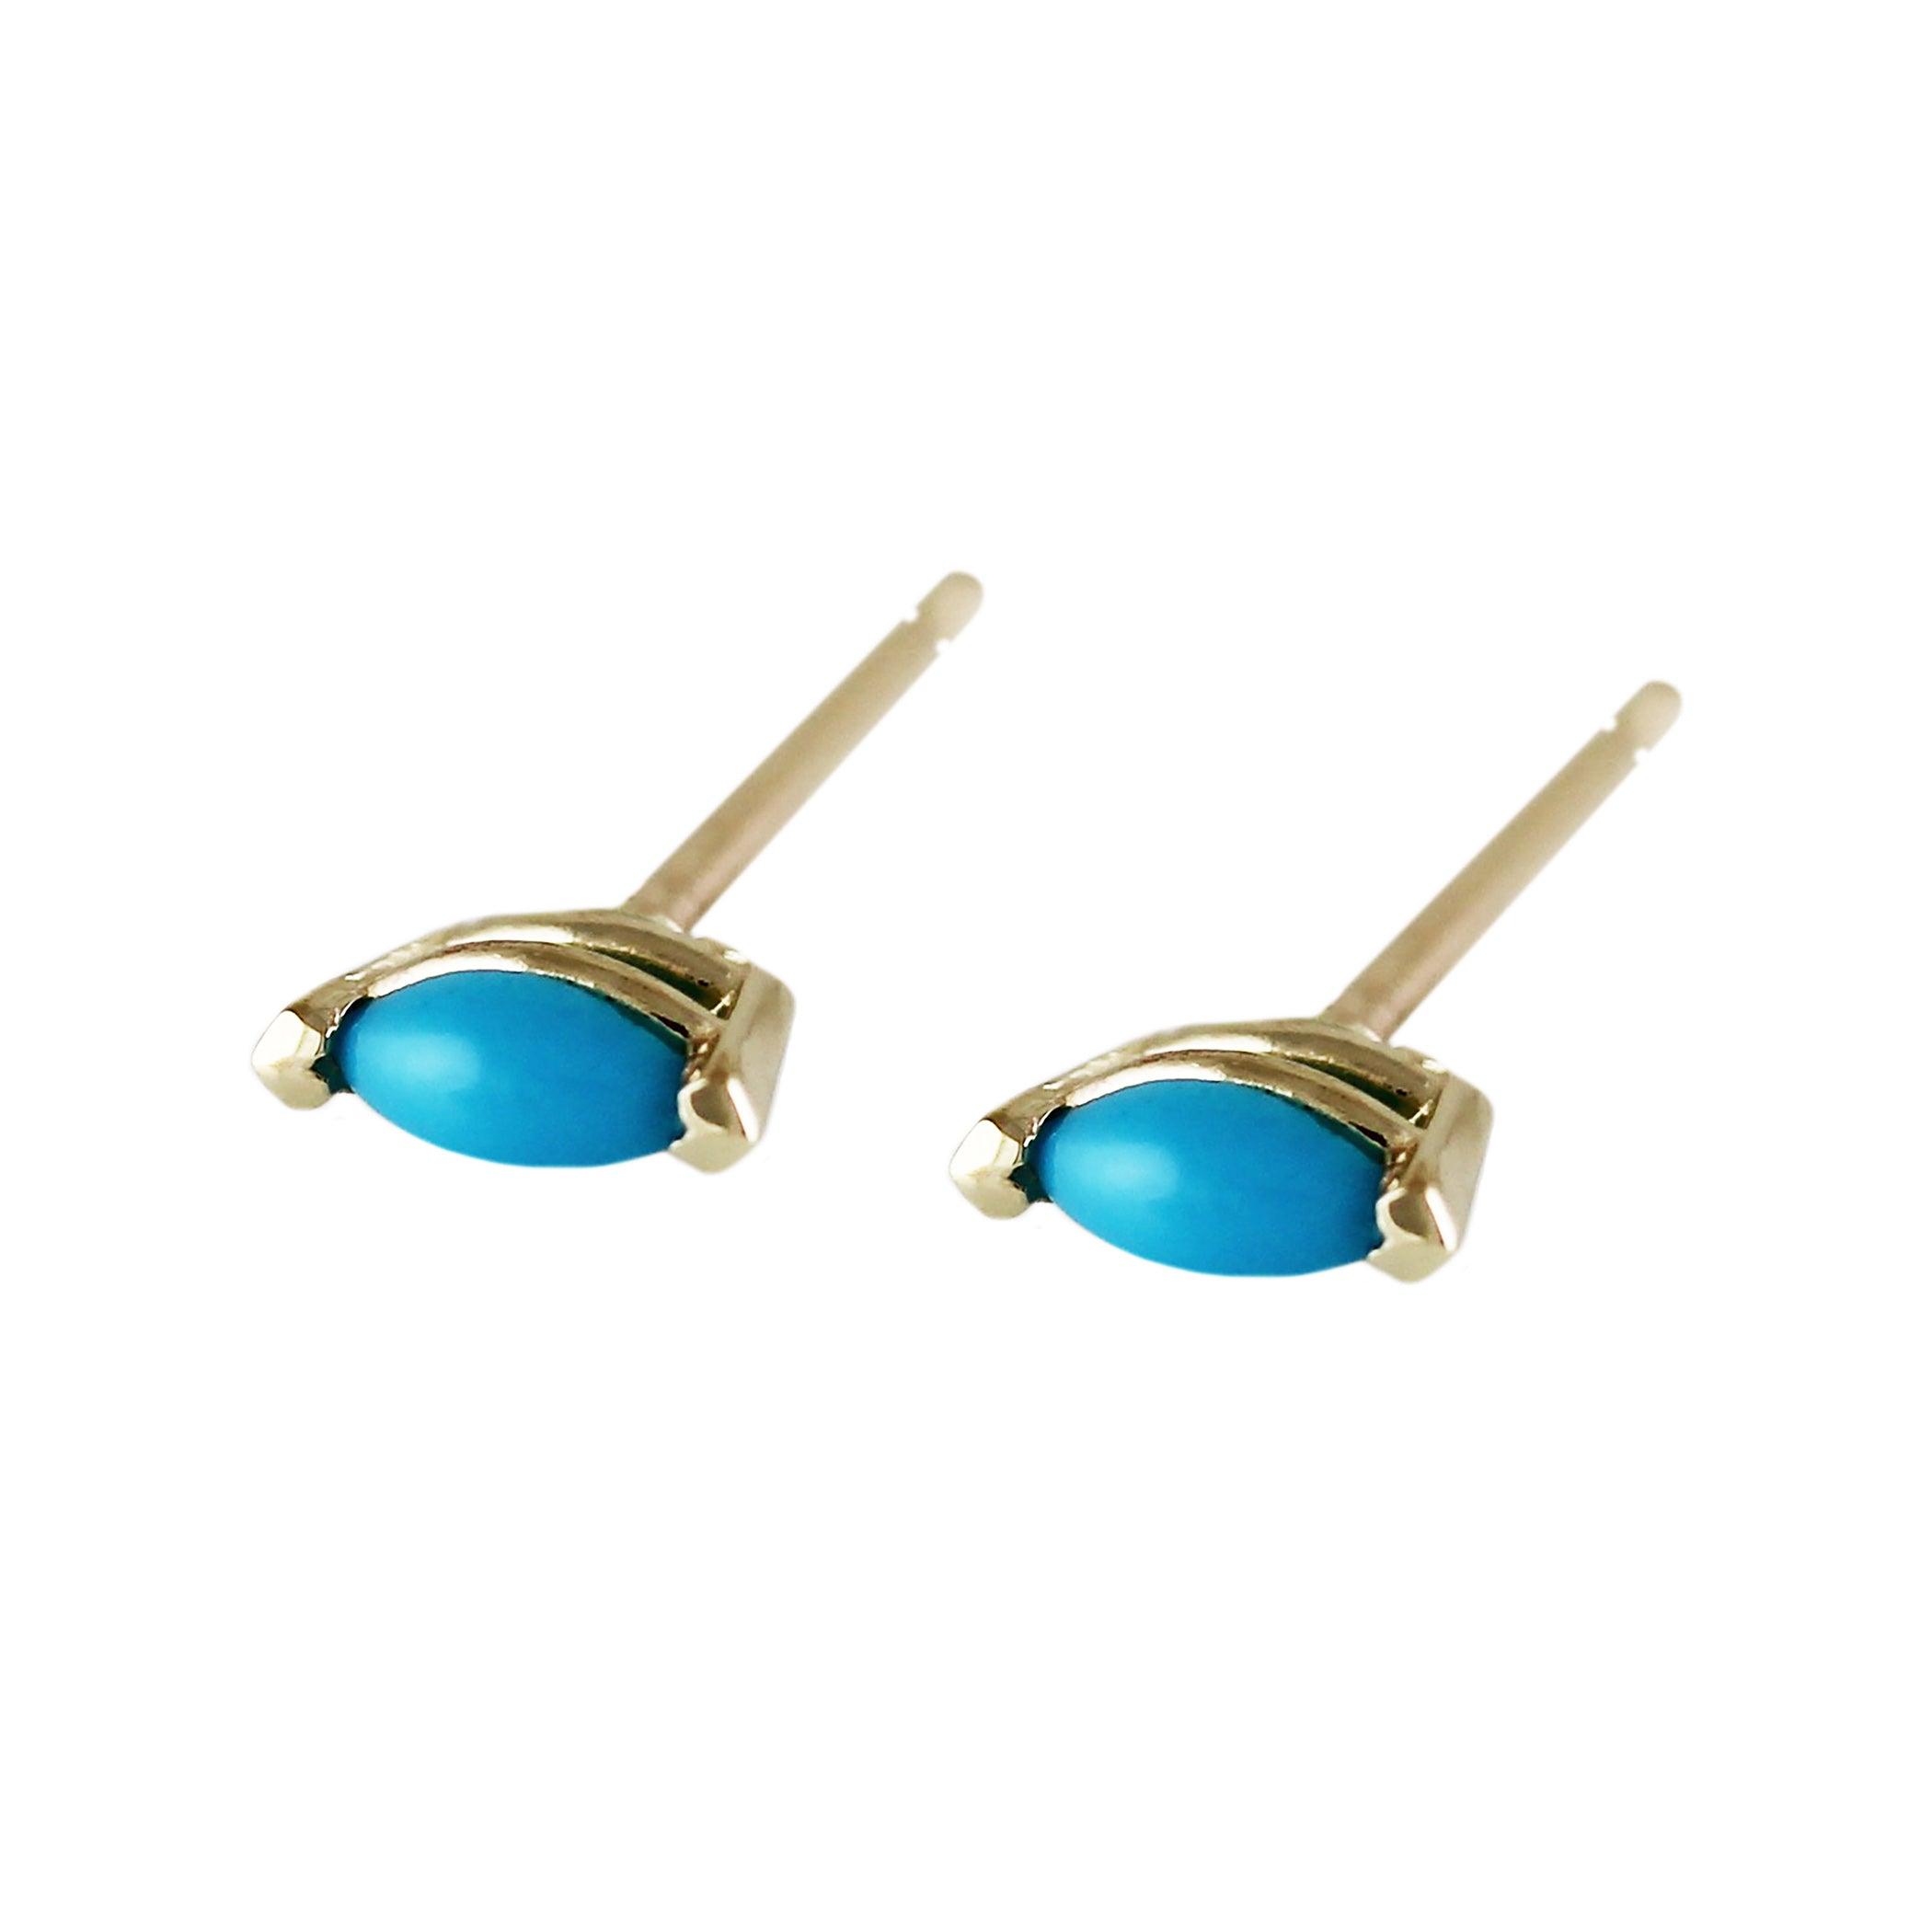 lyst product stud earrings stella diamond jewelry clear and quartz turquoise gallery ippolita sterling silver